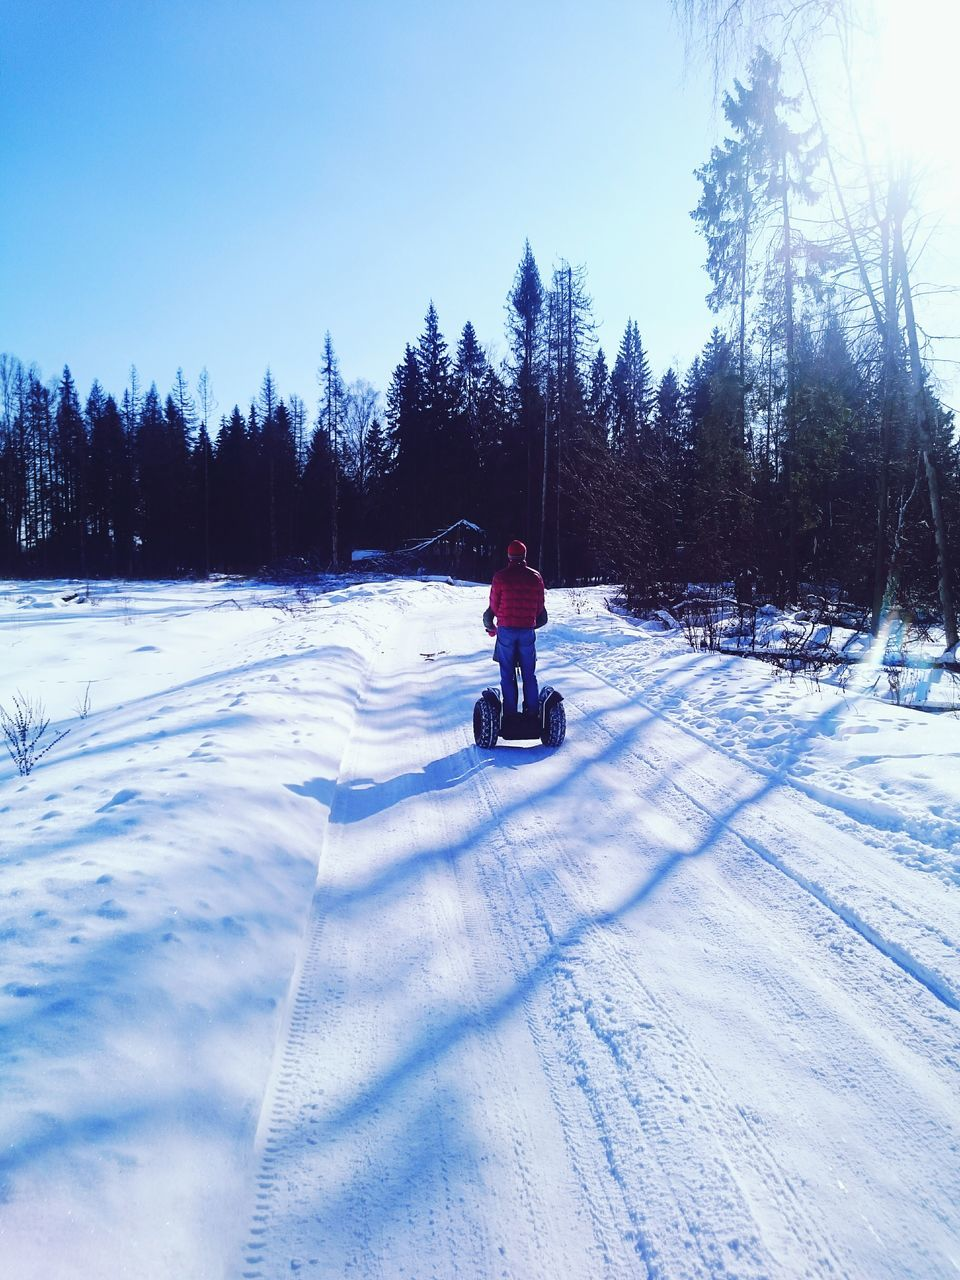 winter, snow, cold temperature, real people, one person, full length, tree, sunlight, leisure activity, nature, day, lifestyles, rear view, outdoors, riding, transportation, beauty in nature, ski holiday, warm clothing, headwear, sky, people